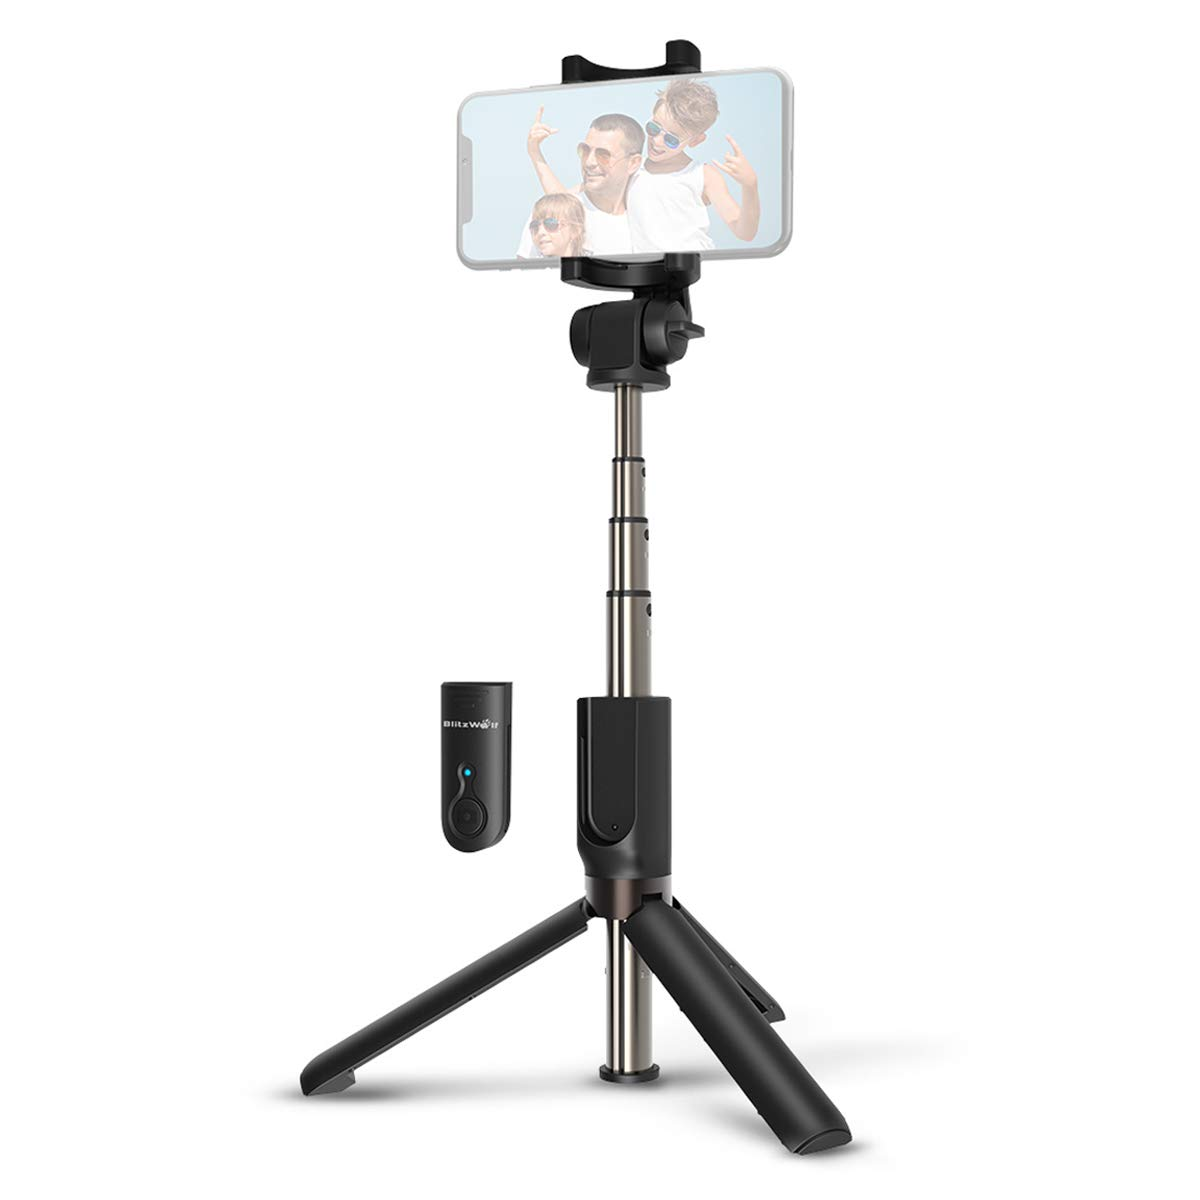 Selfie Stick Bluetooth, BlitzWolf Extendable Selfie Stick Tripod with Wireless Remote for iPhone X/iPhone 8/8 Plus/iPhone 7/7 Plus/iPhone 6 Plus, Galaxy S9/S9 Plus/S8/S8 Plus/S7/Note 8, Huawei, More